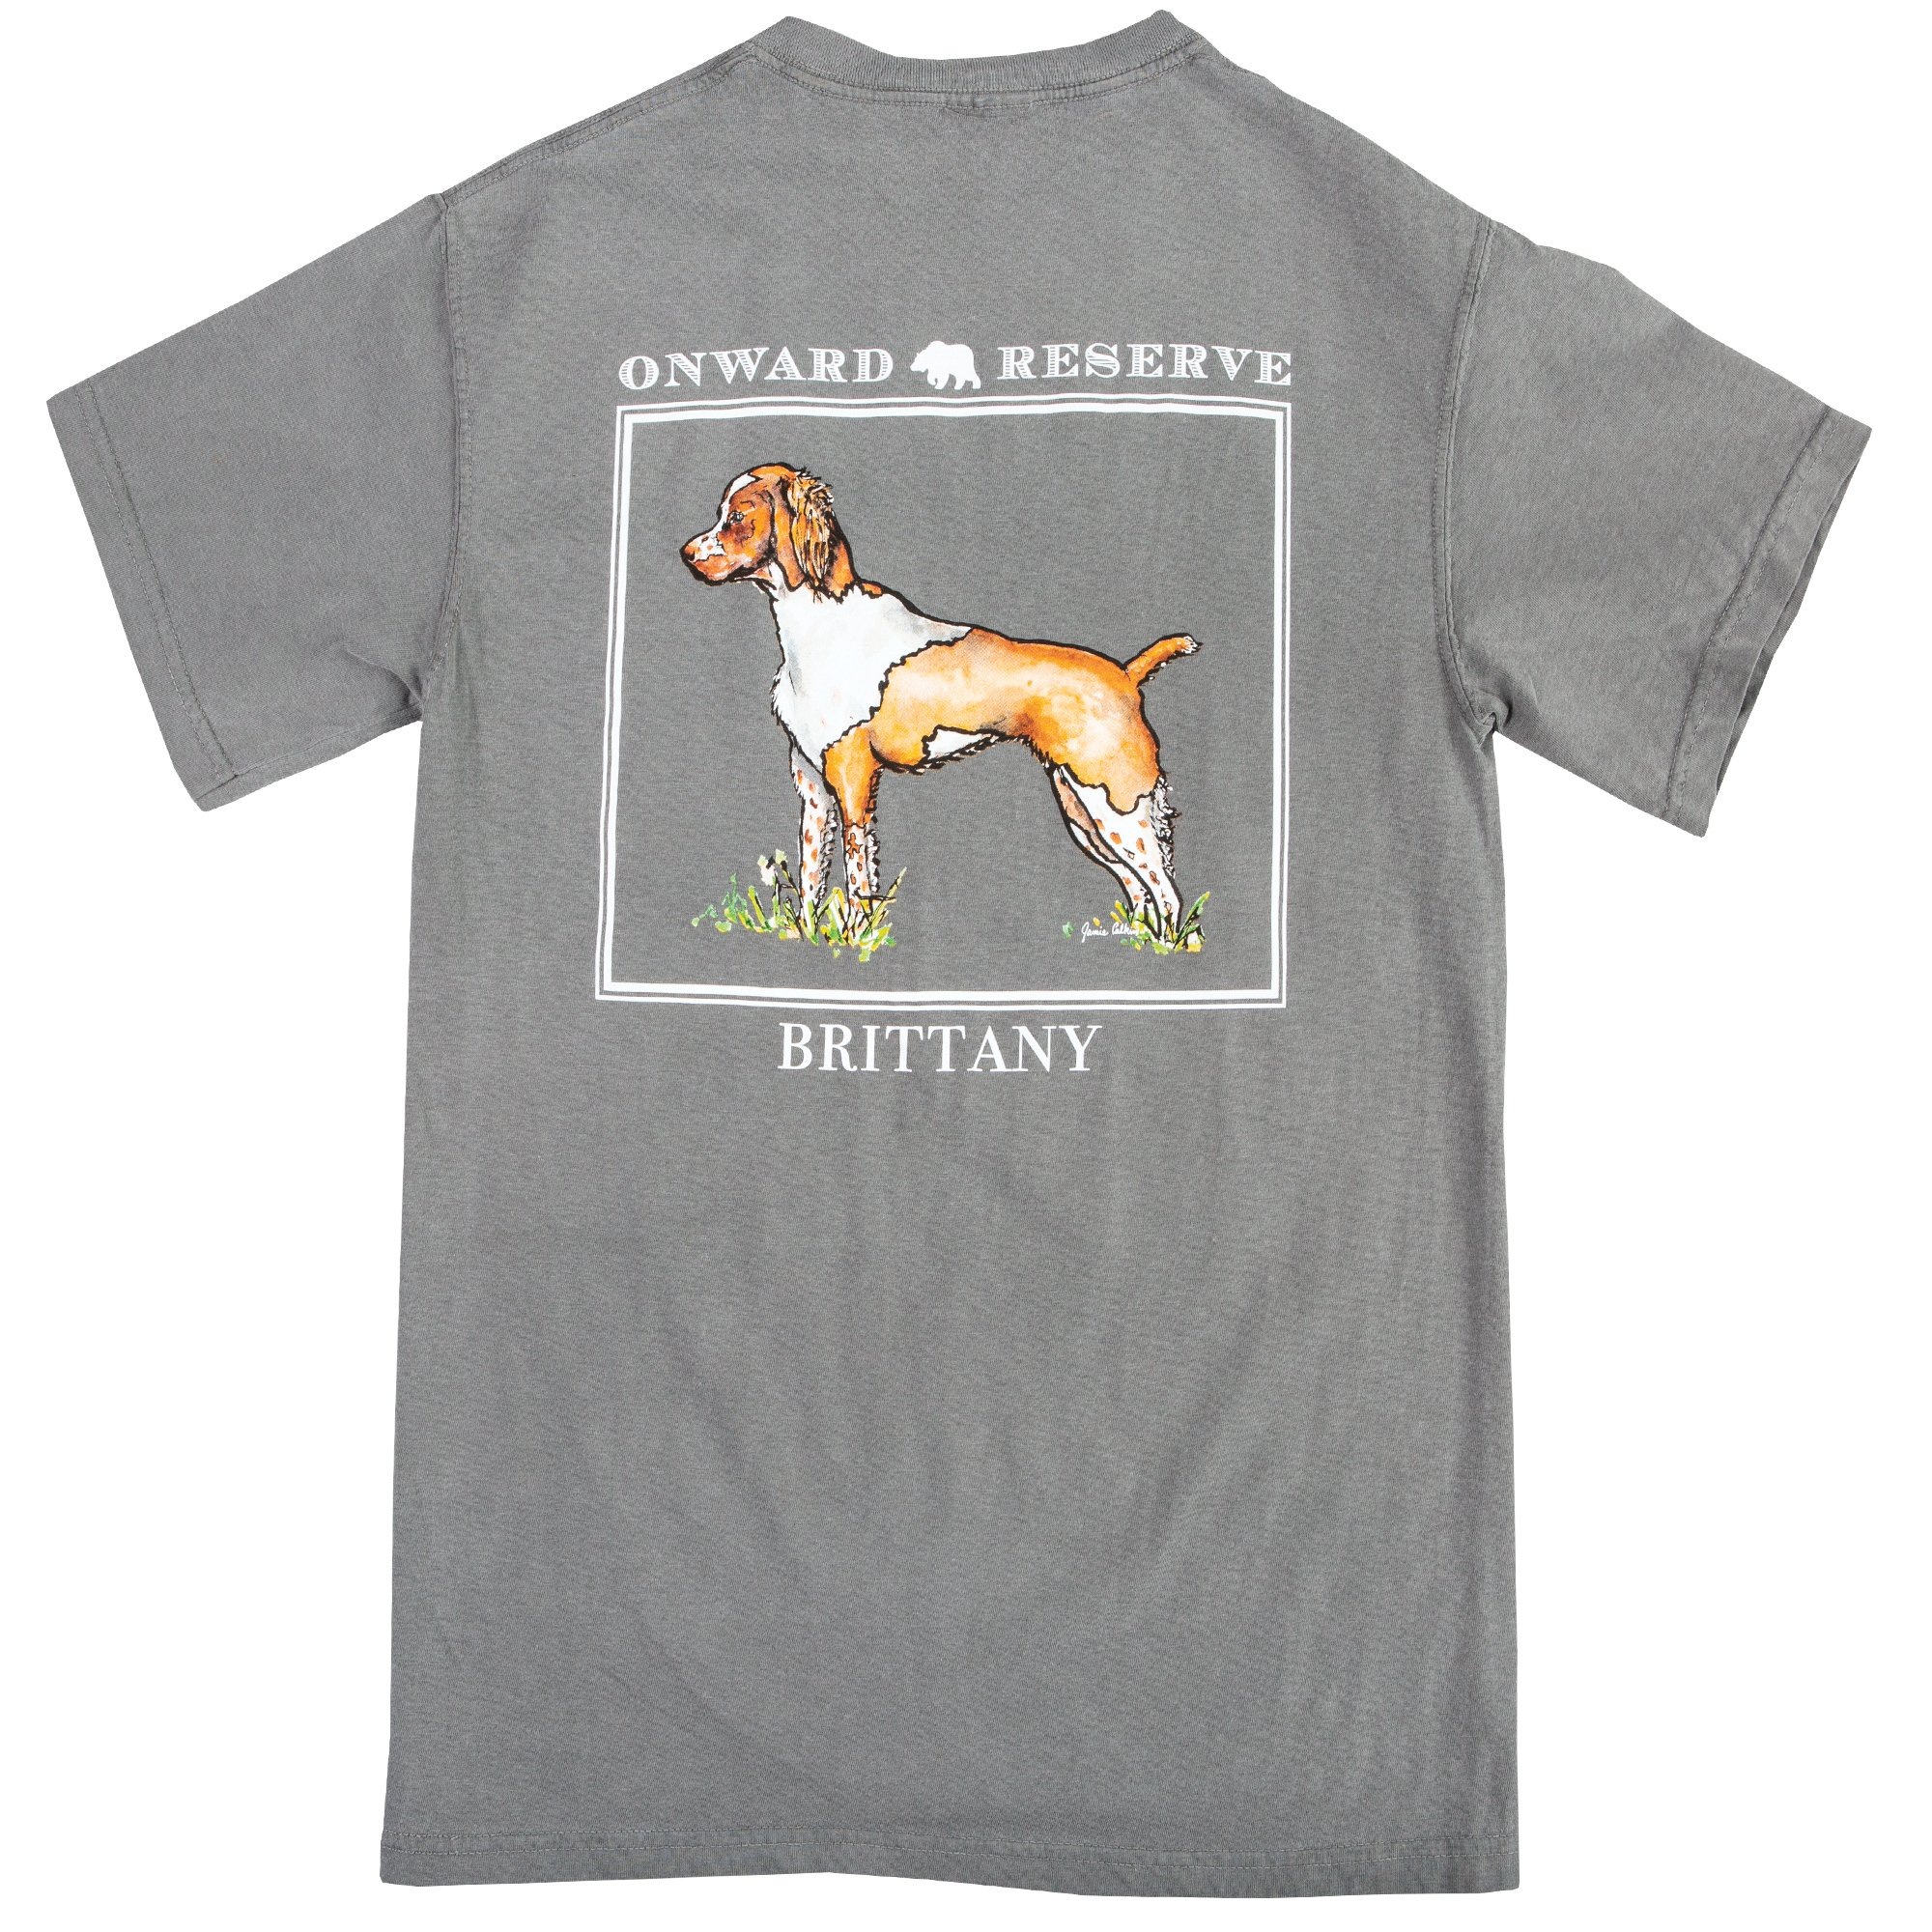 OR-Jamie-Tee-SS-Brittany-Grey-Back.jpg